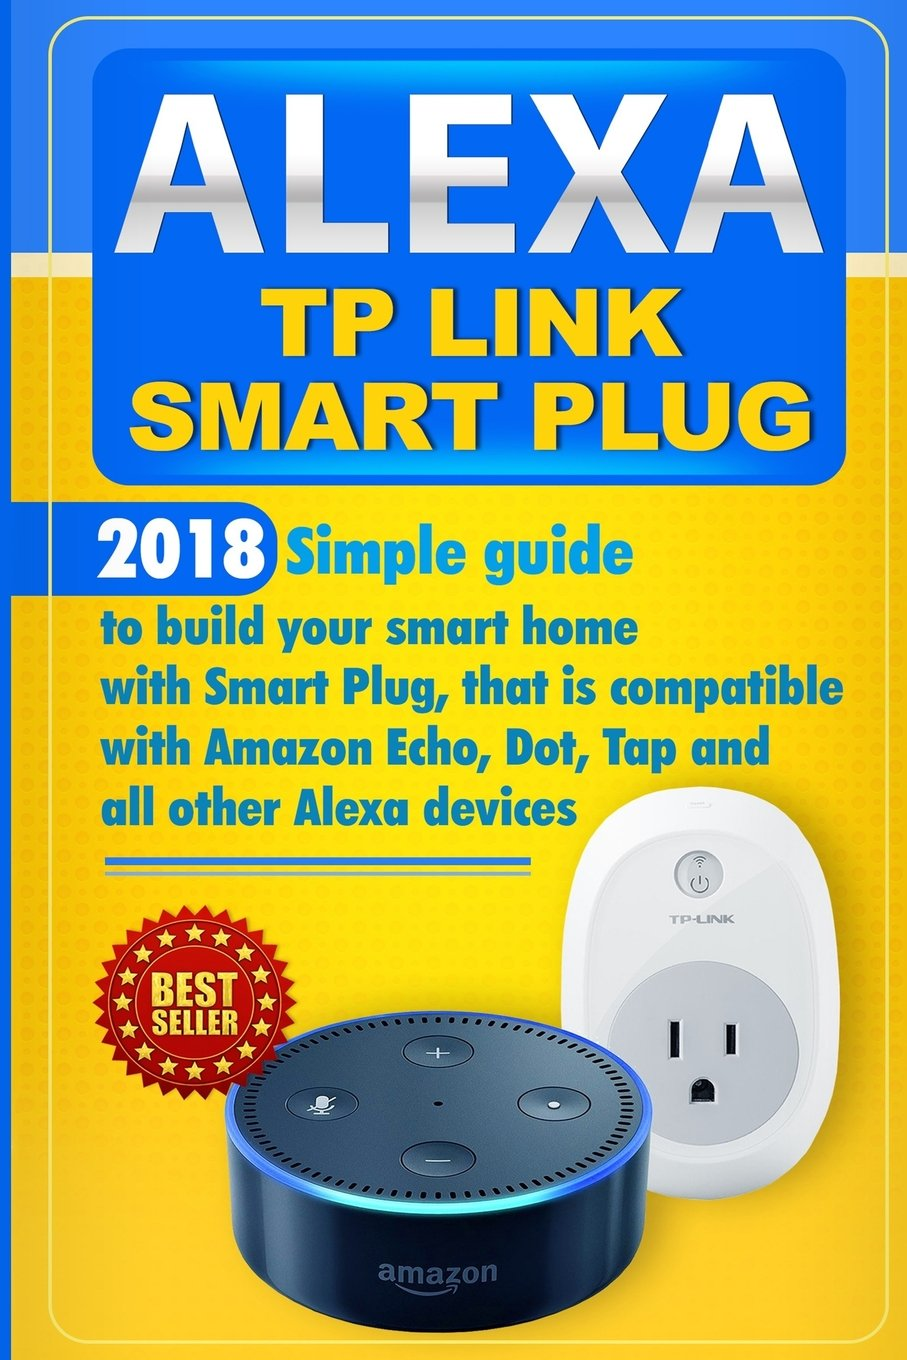 Alexa TP Link Smart Plug: Simple guide to build your smart home with Smart Plug, that is compatible with Amazon Echo, Dot, Tap and all other Alexa devices pdf